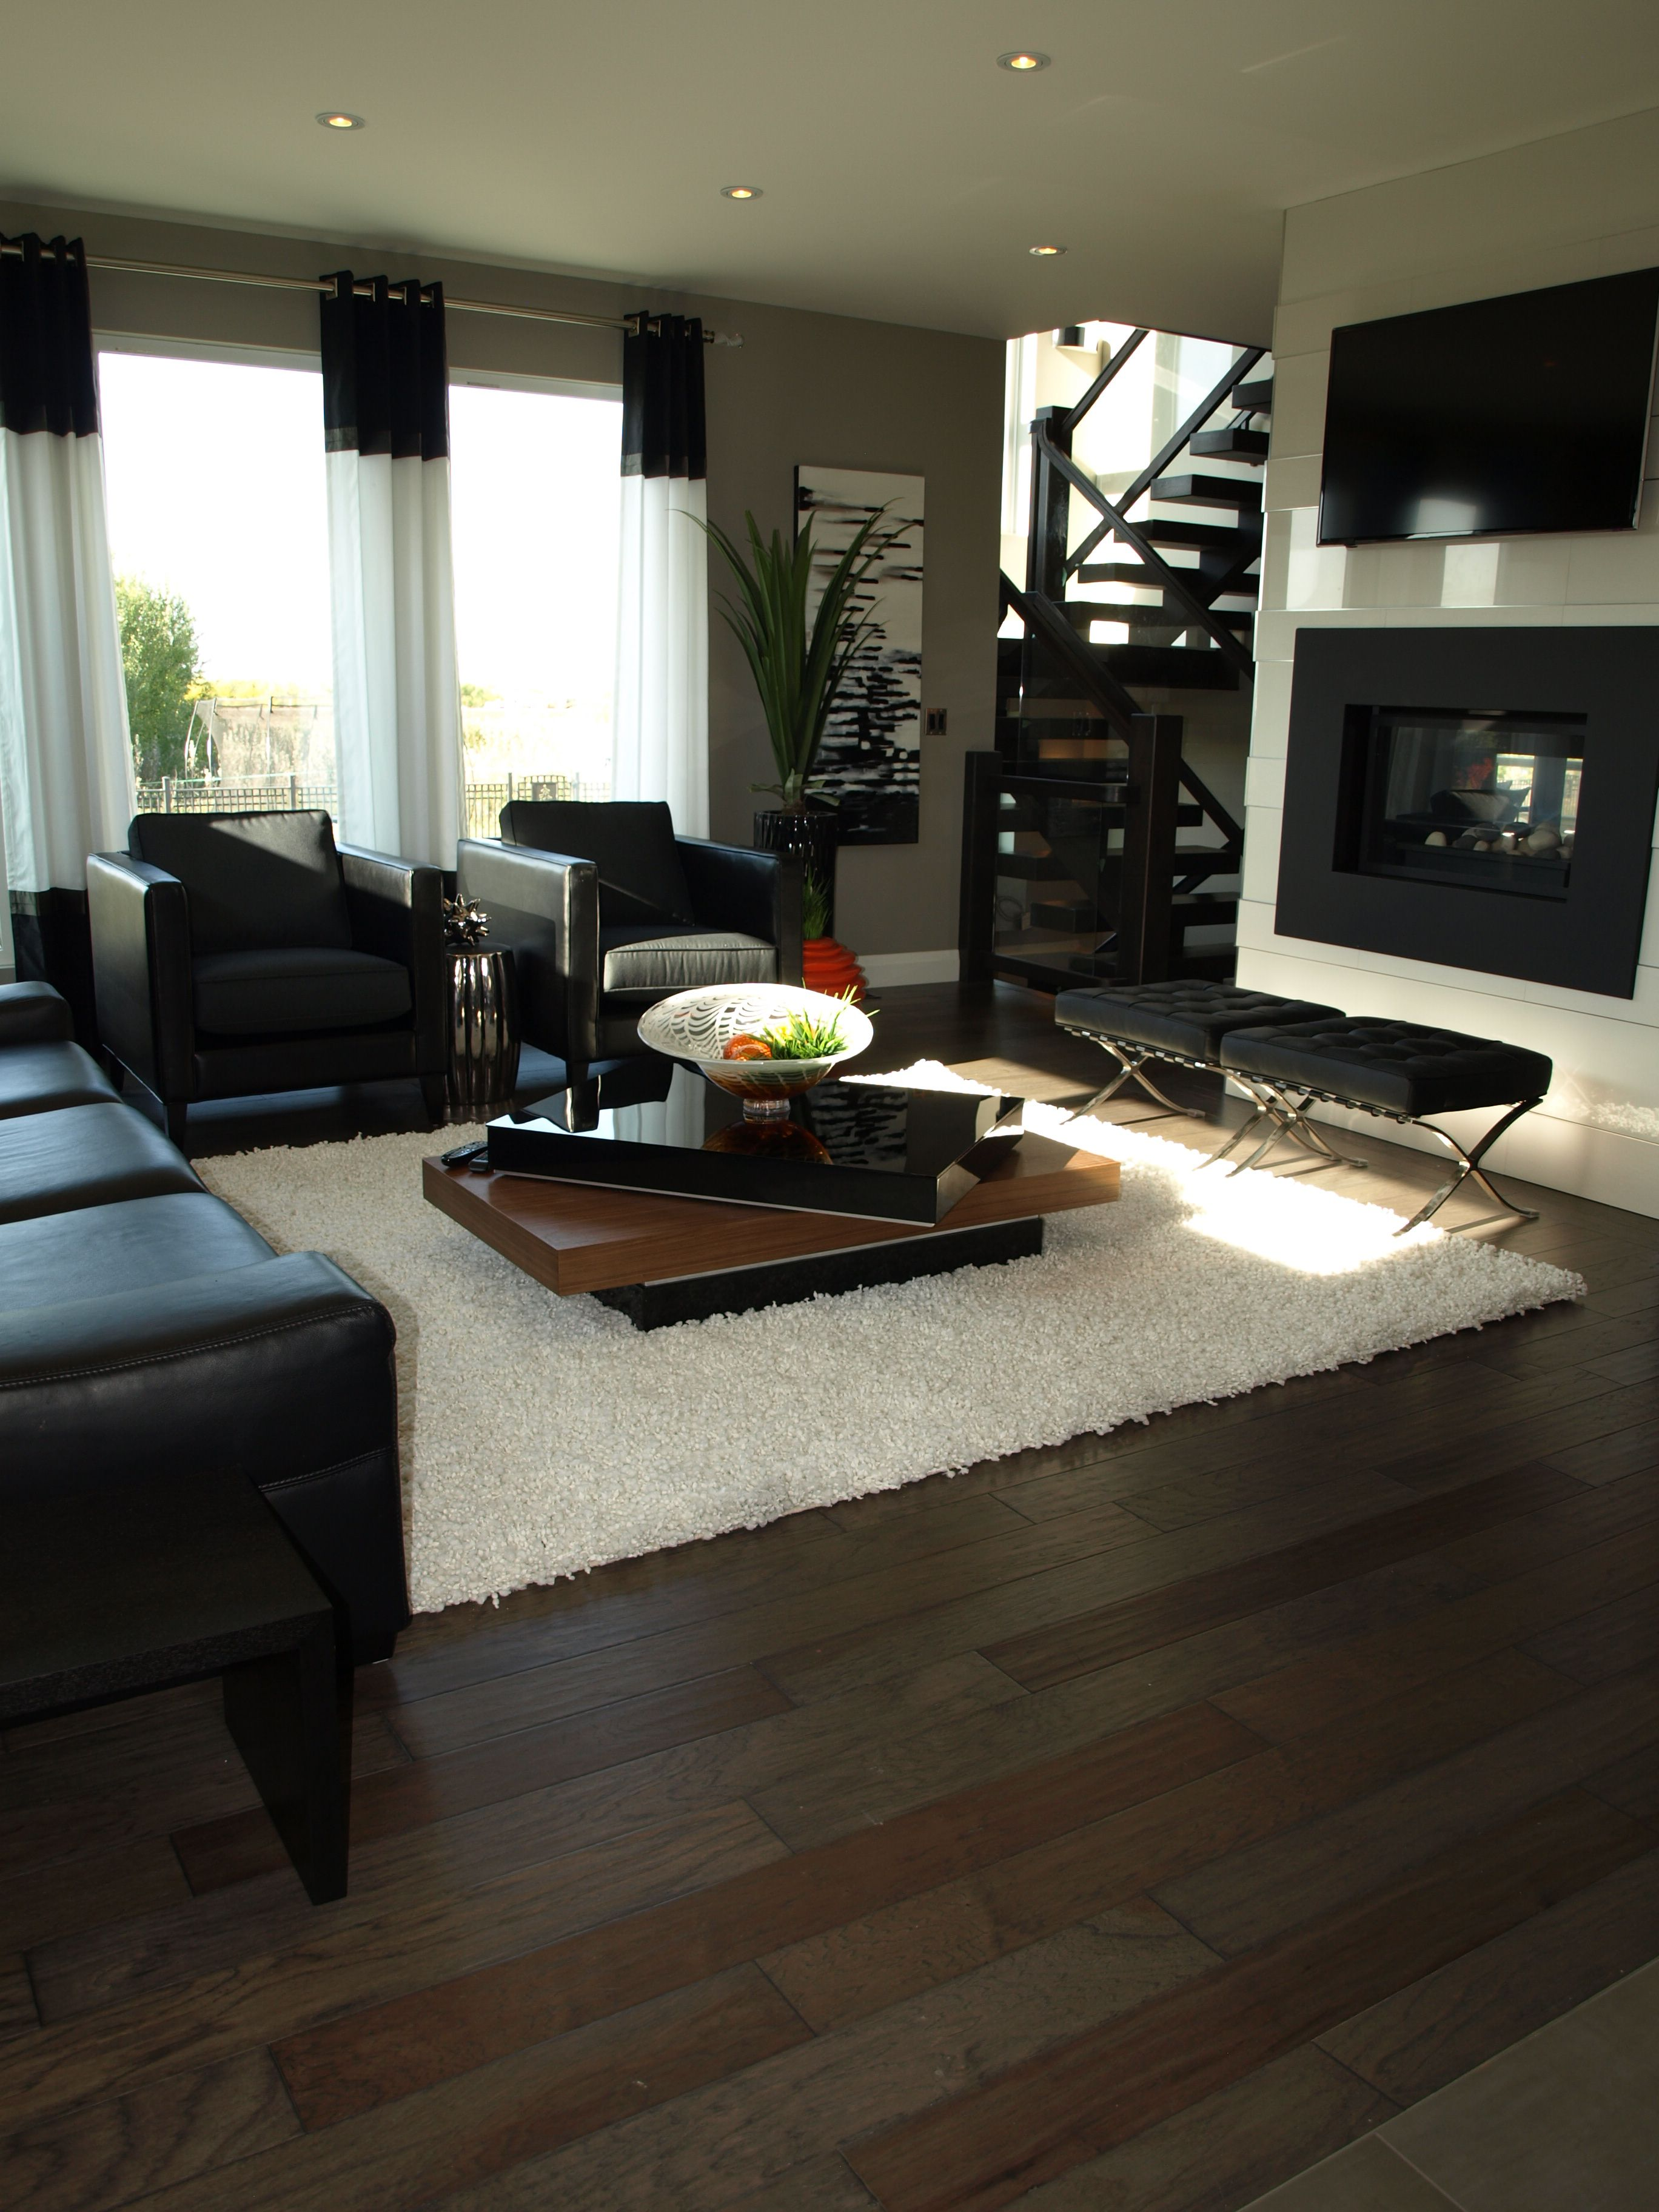 This Modern Living Room Almost Has A Bachelor Type Feel To It, With All The